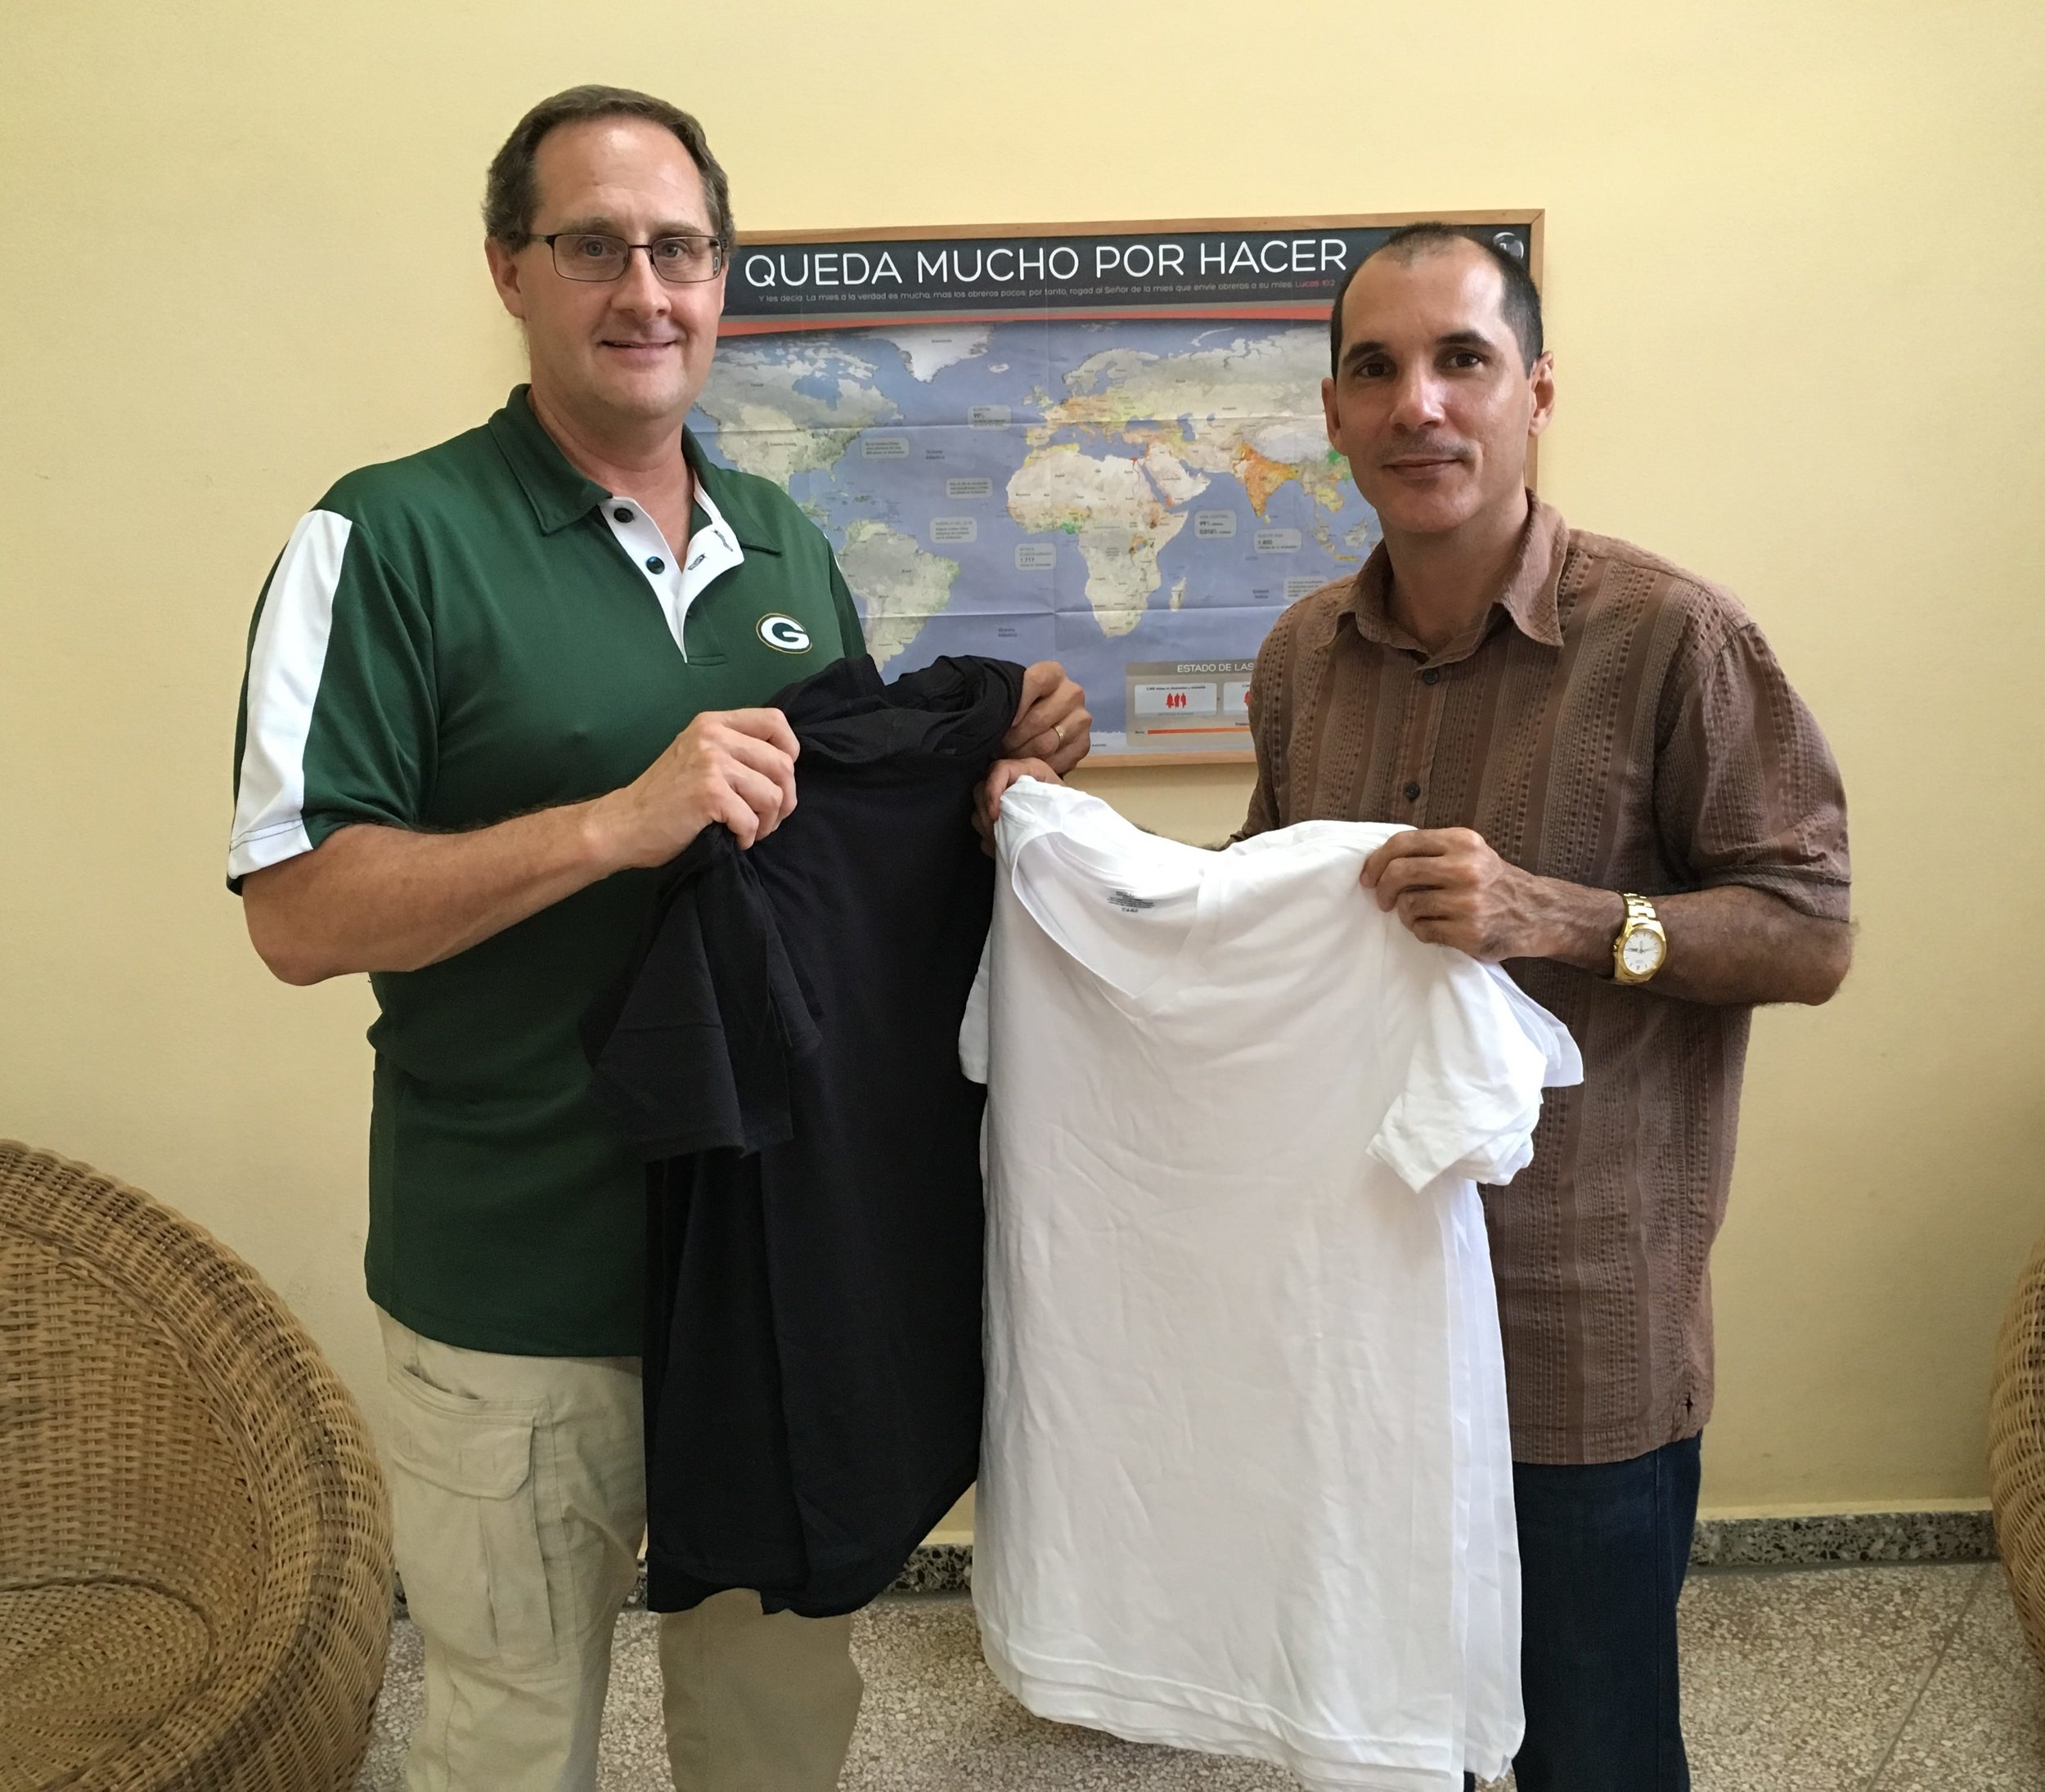 T-Shirts being received by Pastor Joel of the 1st Baptist Church, Guantánamo, Cuba